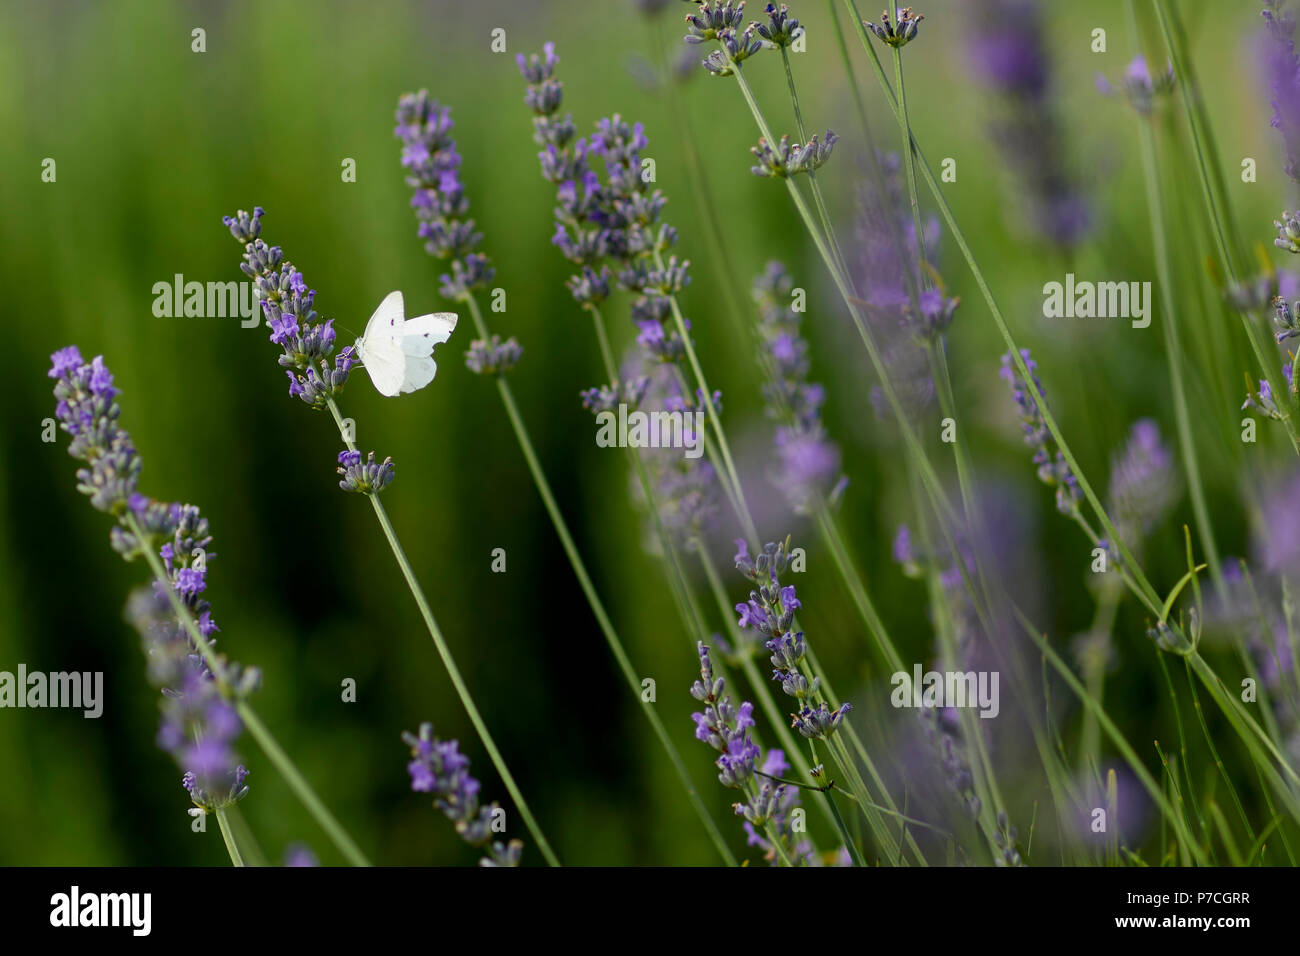 Butterfly on Lavender - Stock Image